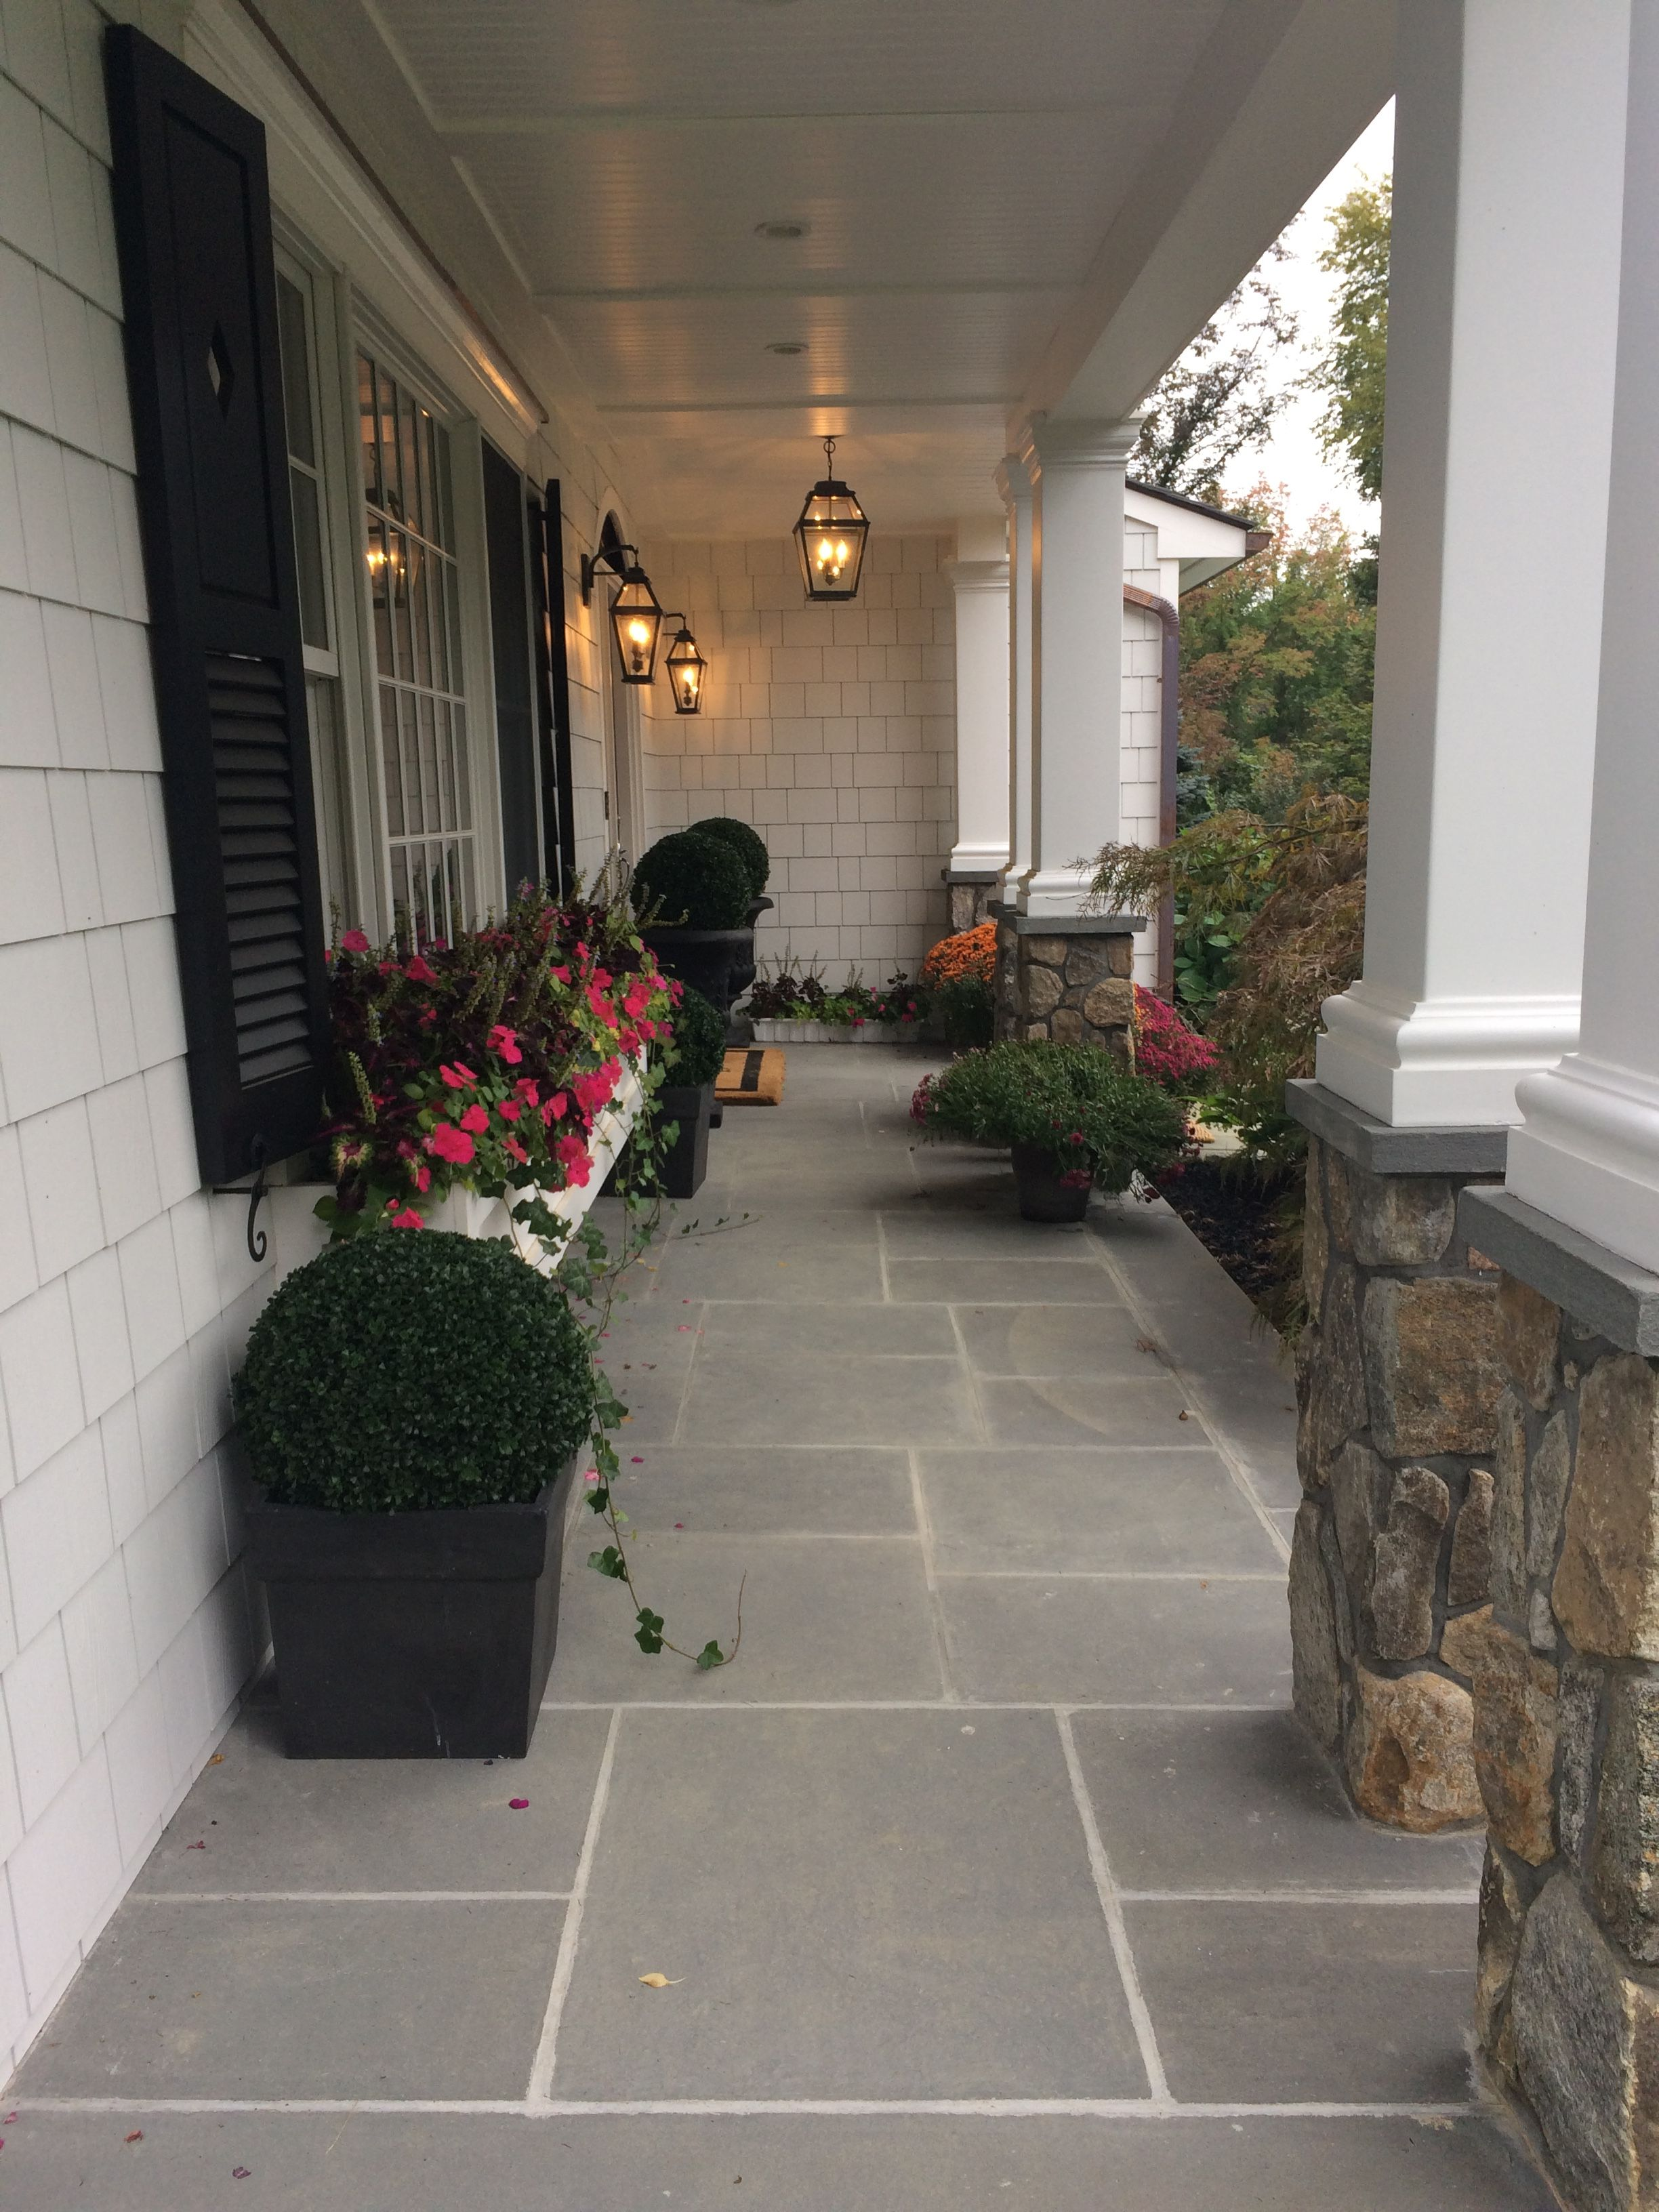 My Front Porch With Bluestone Patio, Window Boxes, Boxwood Topiaries